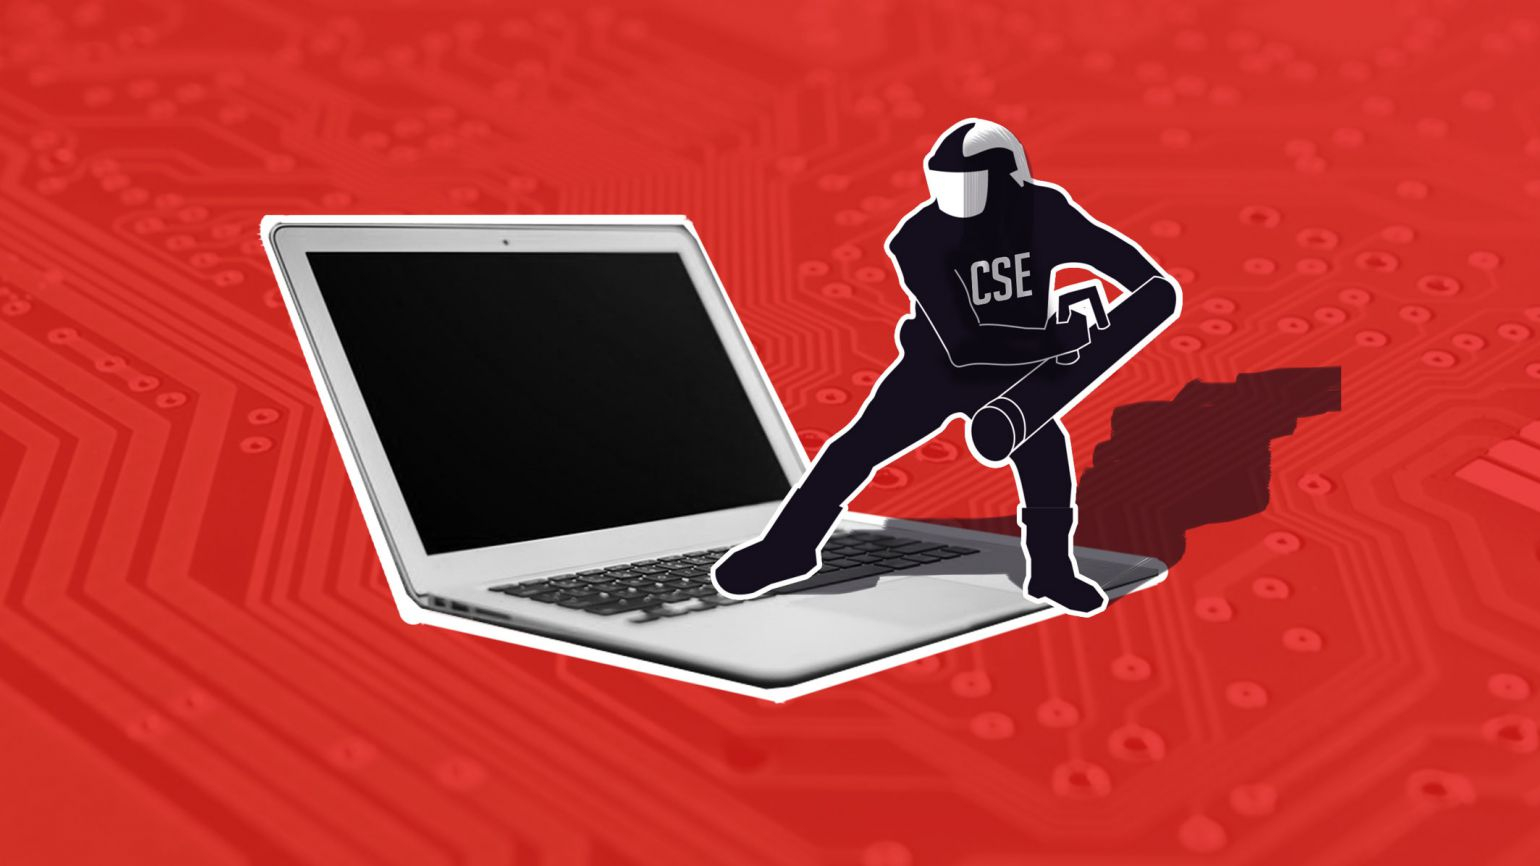 illustration of a CSE agent using a battering ram on a laptop